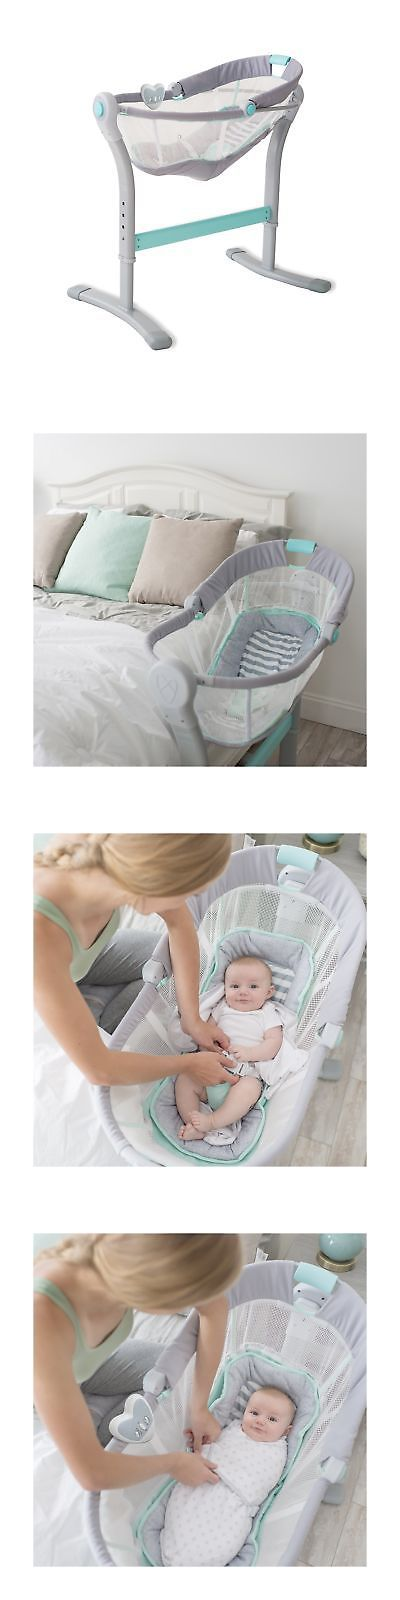 Baby Co-Sleepers 121152: Swaddleme By Your Bed Sleeper Bedside Sleeper -> BUY IT NOW ONLY: $104.77 on eBay!